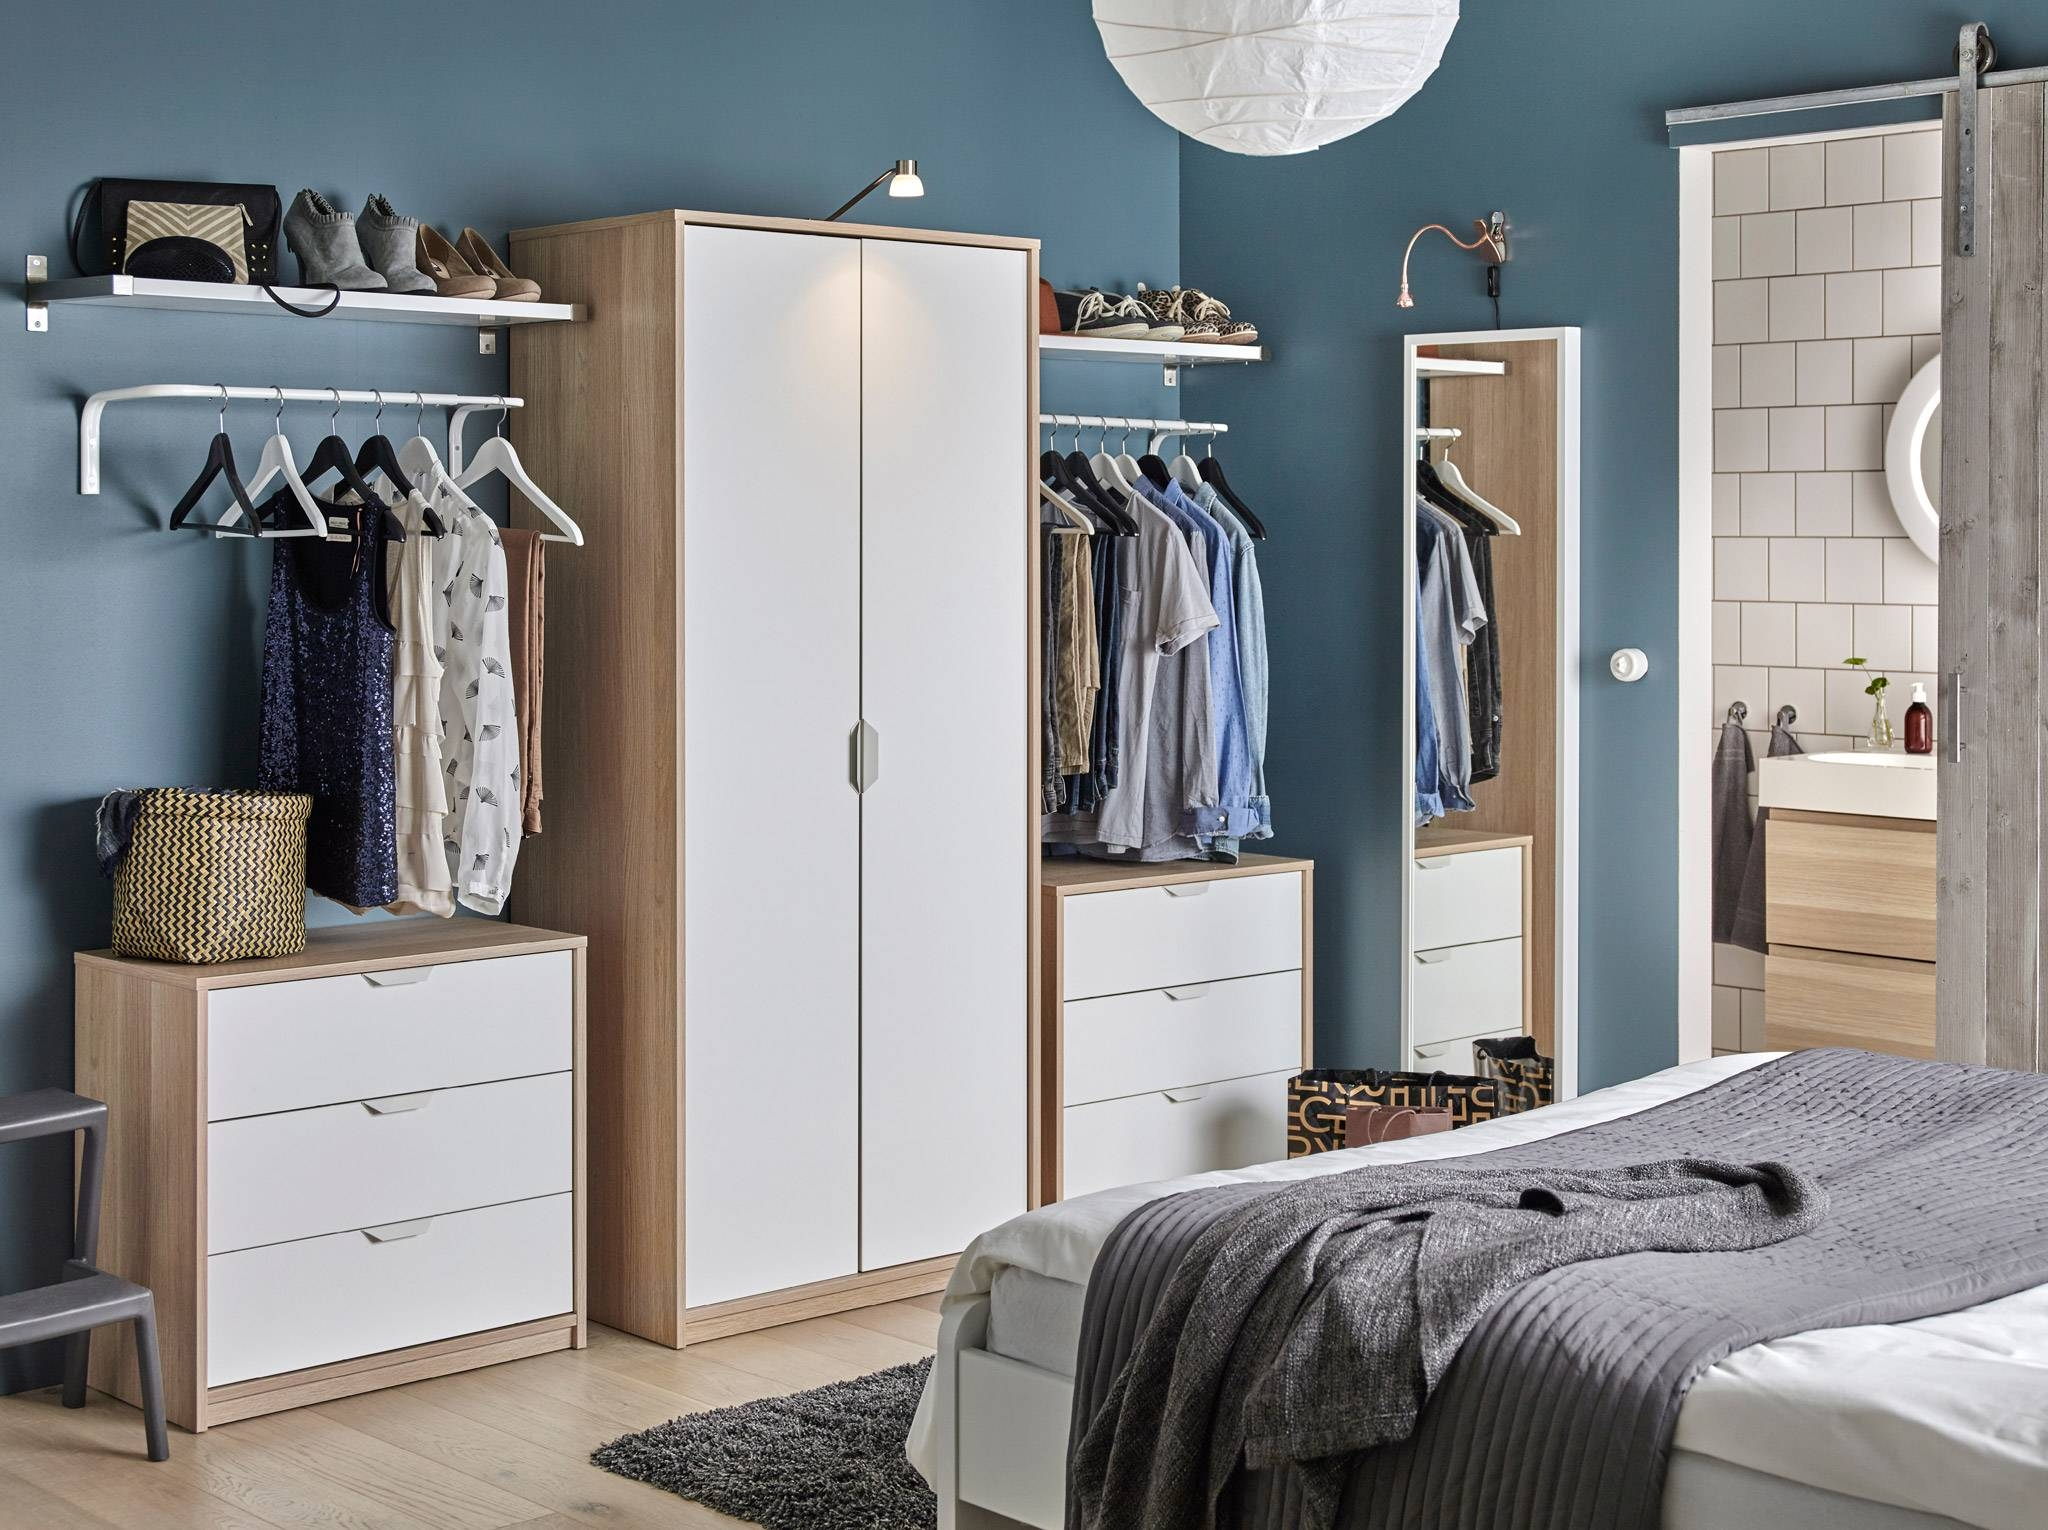 Bedroom Furniture & Ideas | Ikea for Wardrobes Chest of Drawers Combination (Image 4 of 15)